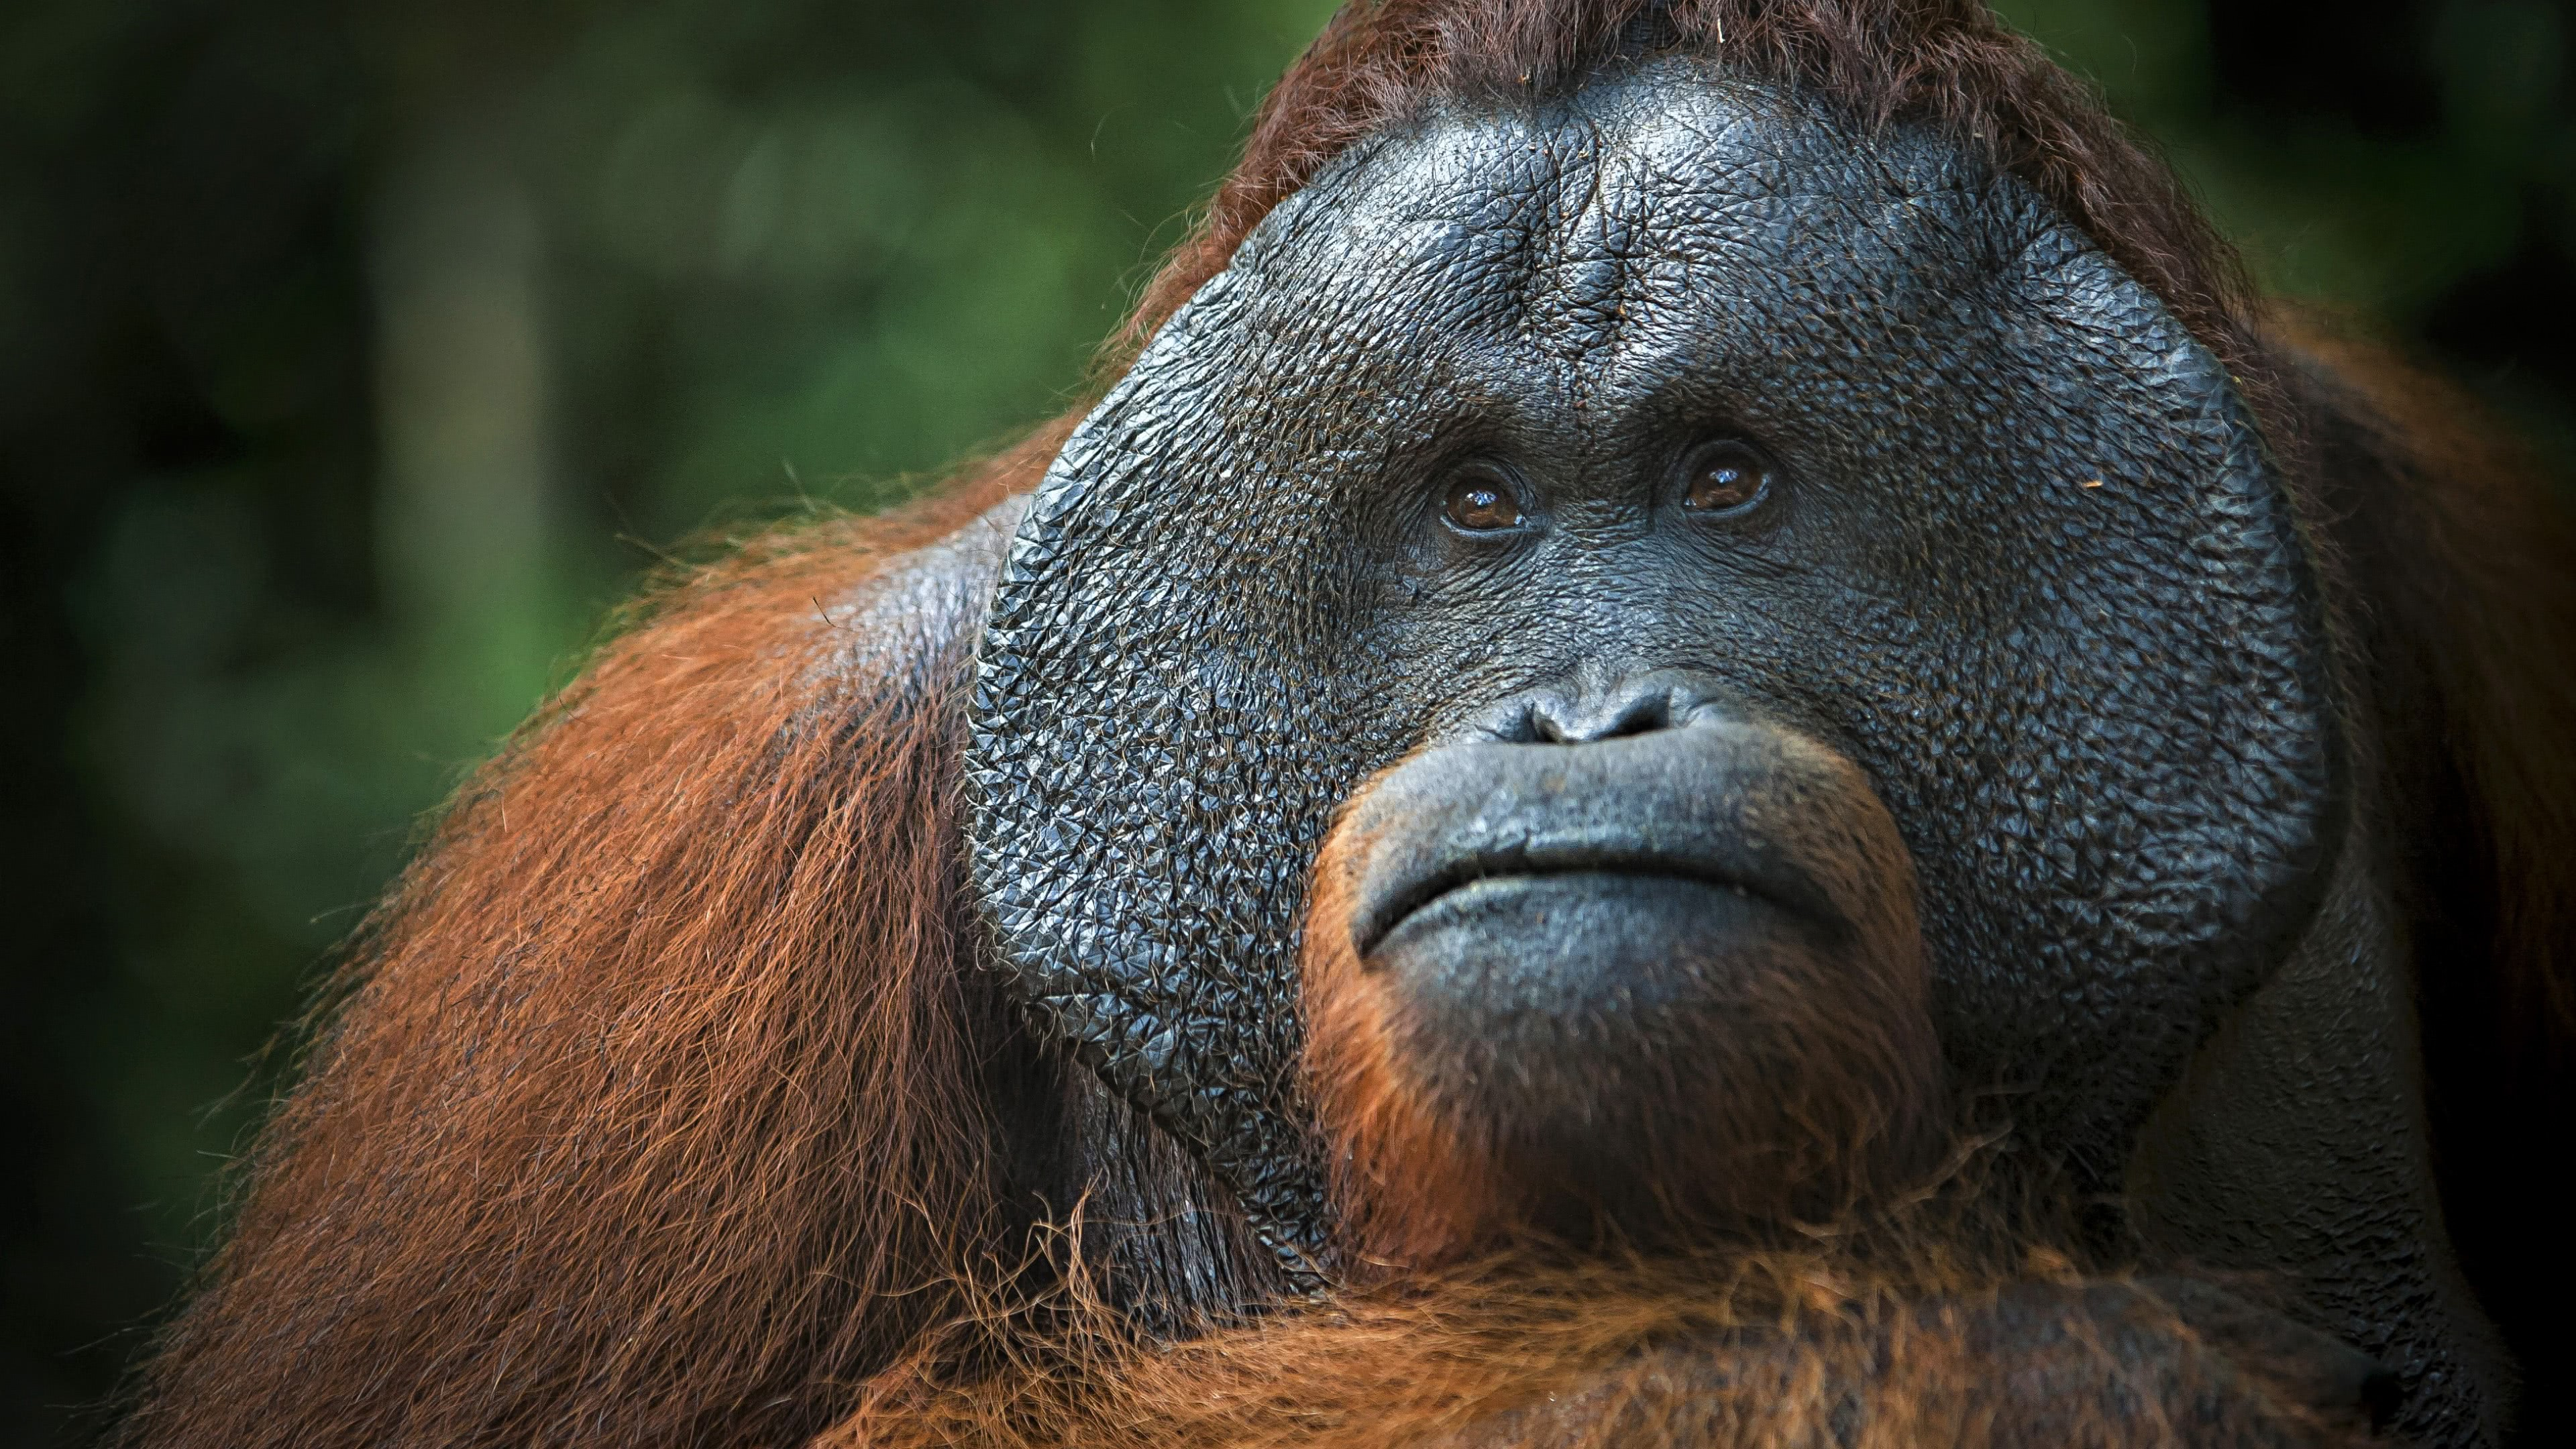 orangutan uhd 4k wallpaper